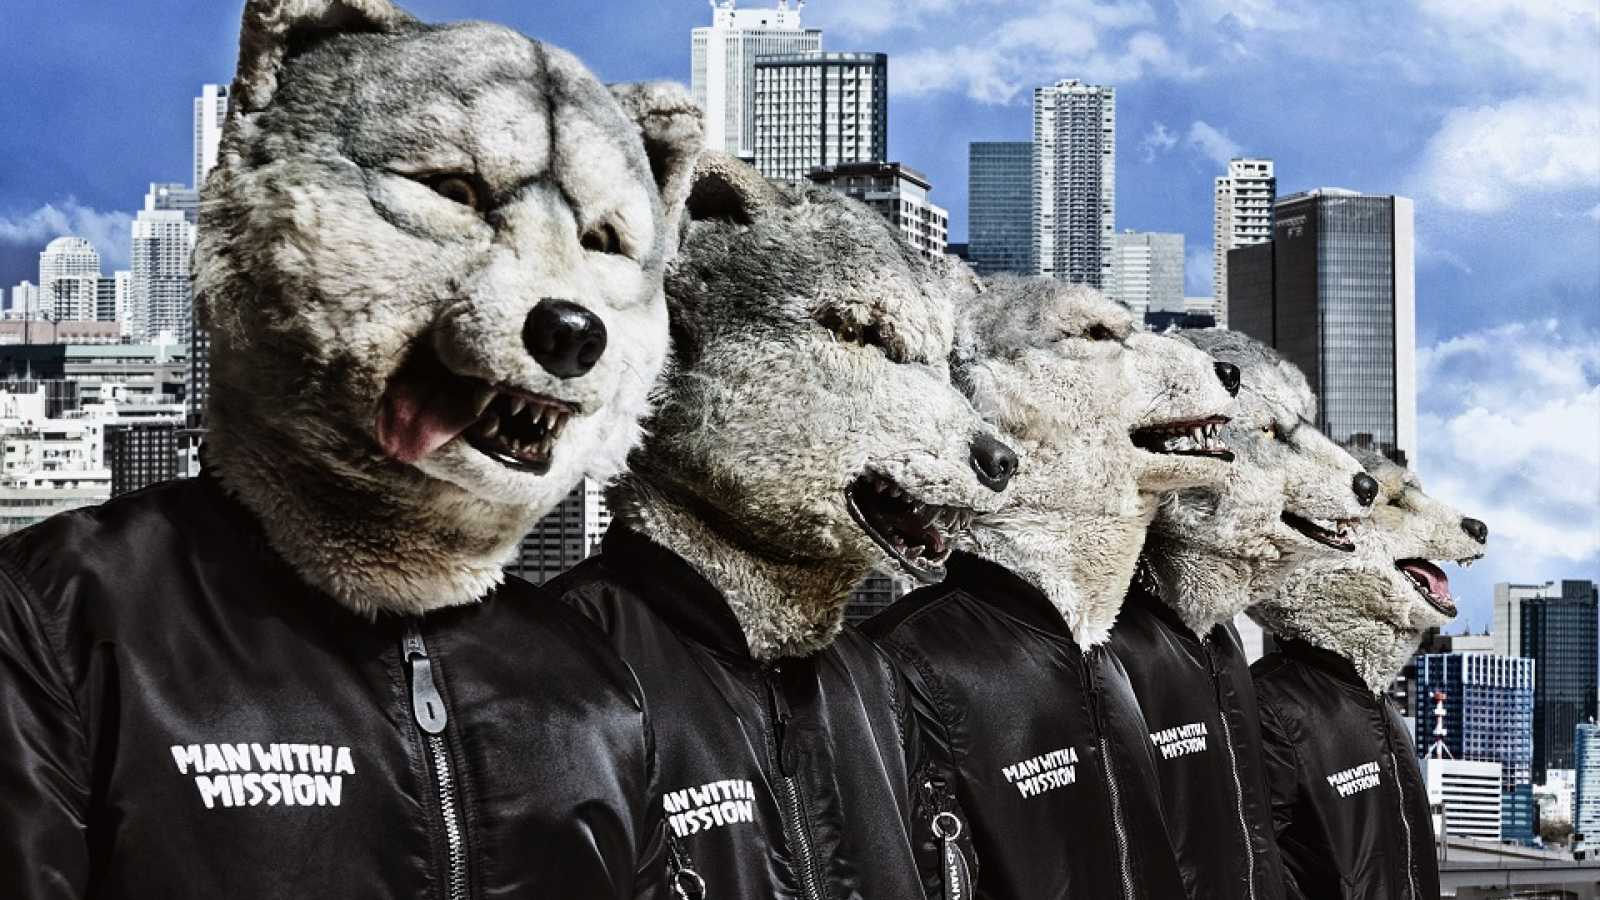 MAN WITH A MISSION anuncia planos para seu 10º aniversário © MAN WITH A MISSION. All rights reserved.